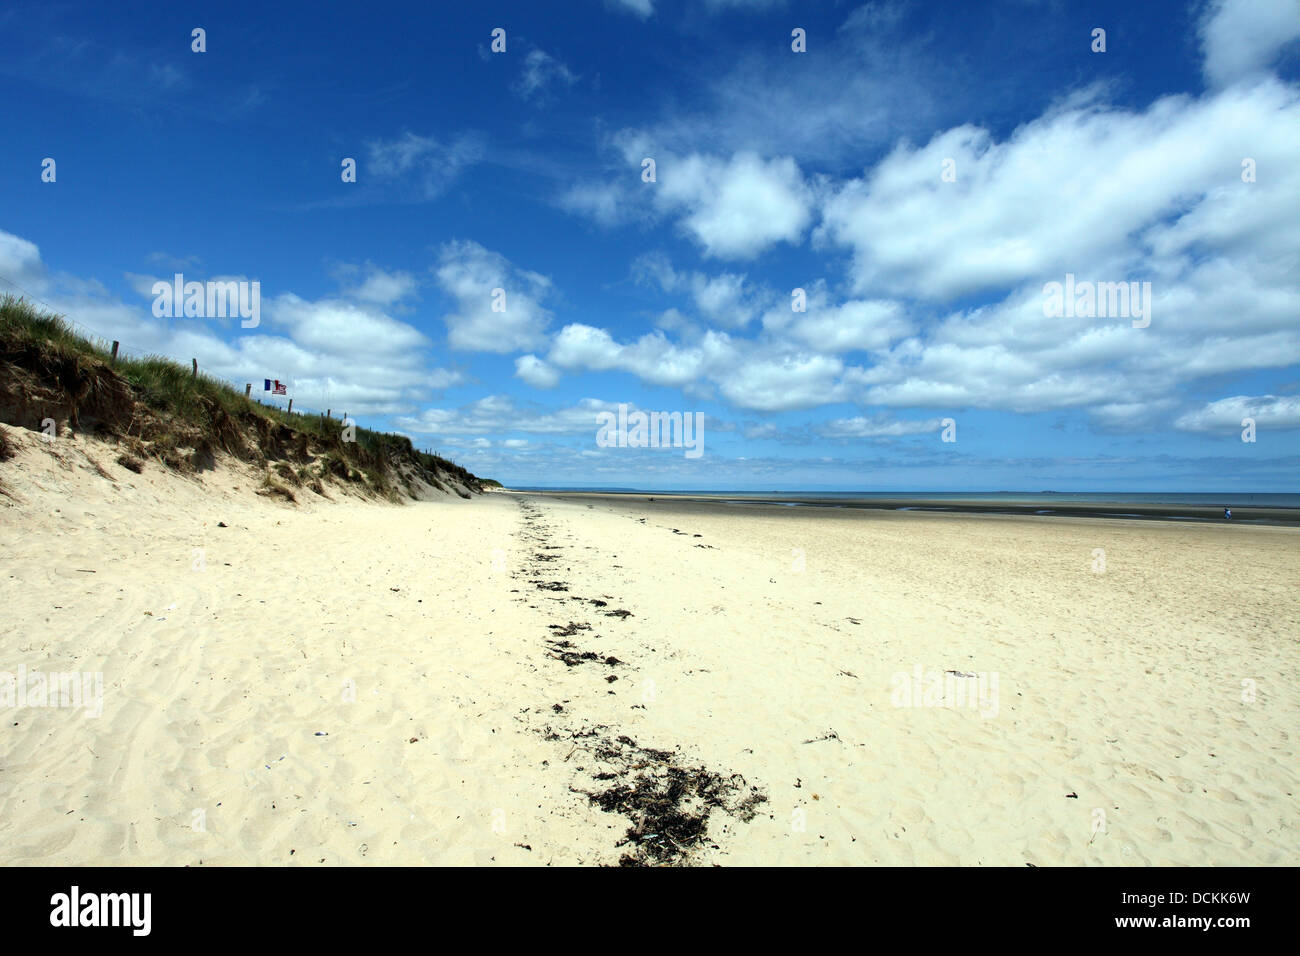 Utah Beach today, Operation Overlord, Normandy, France. D-Day Stock Photo